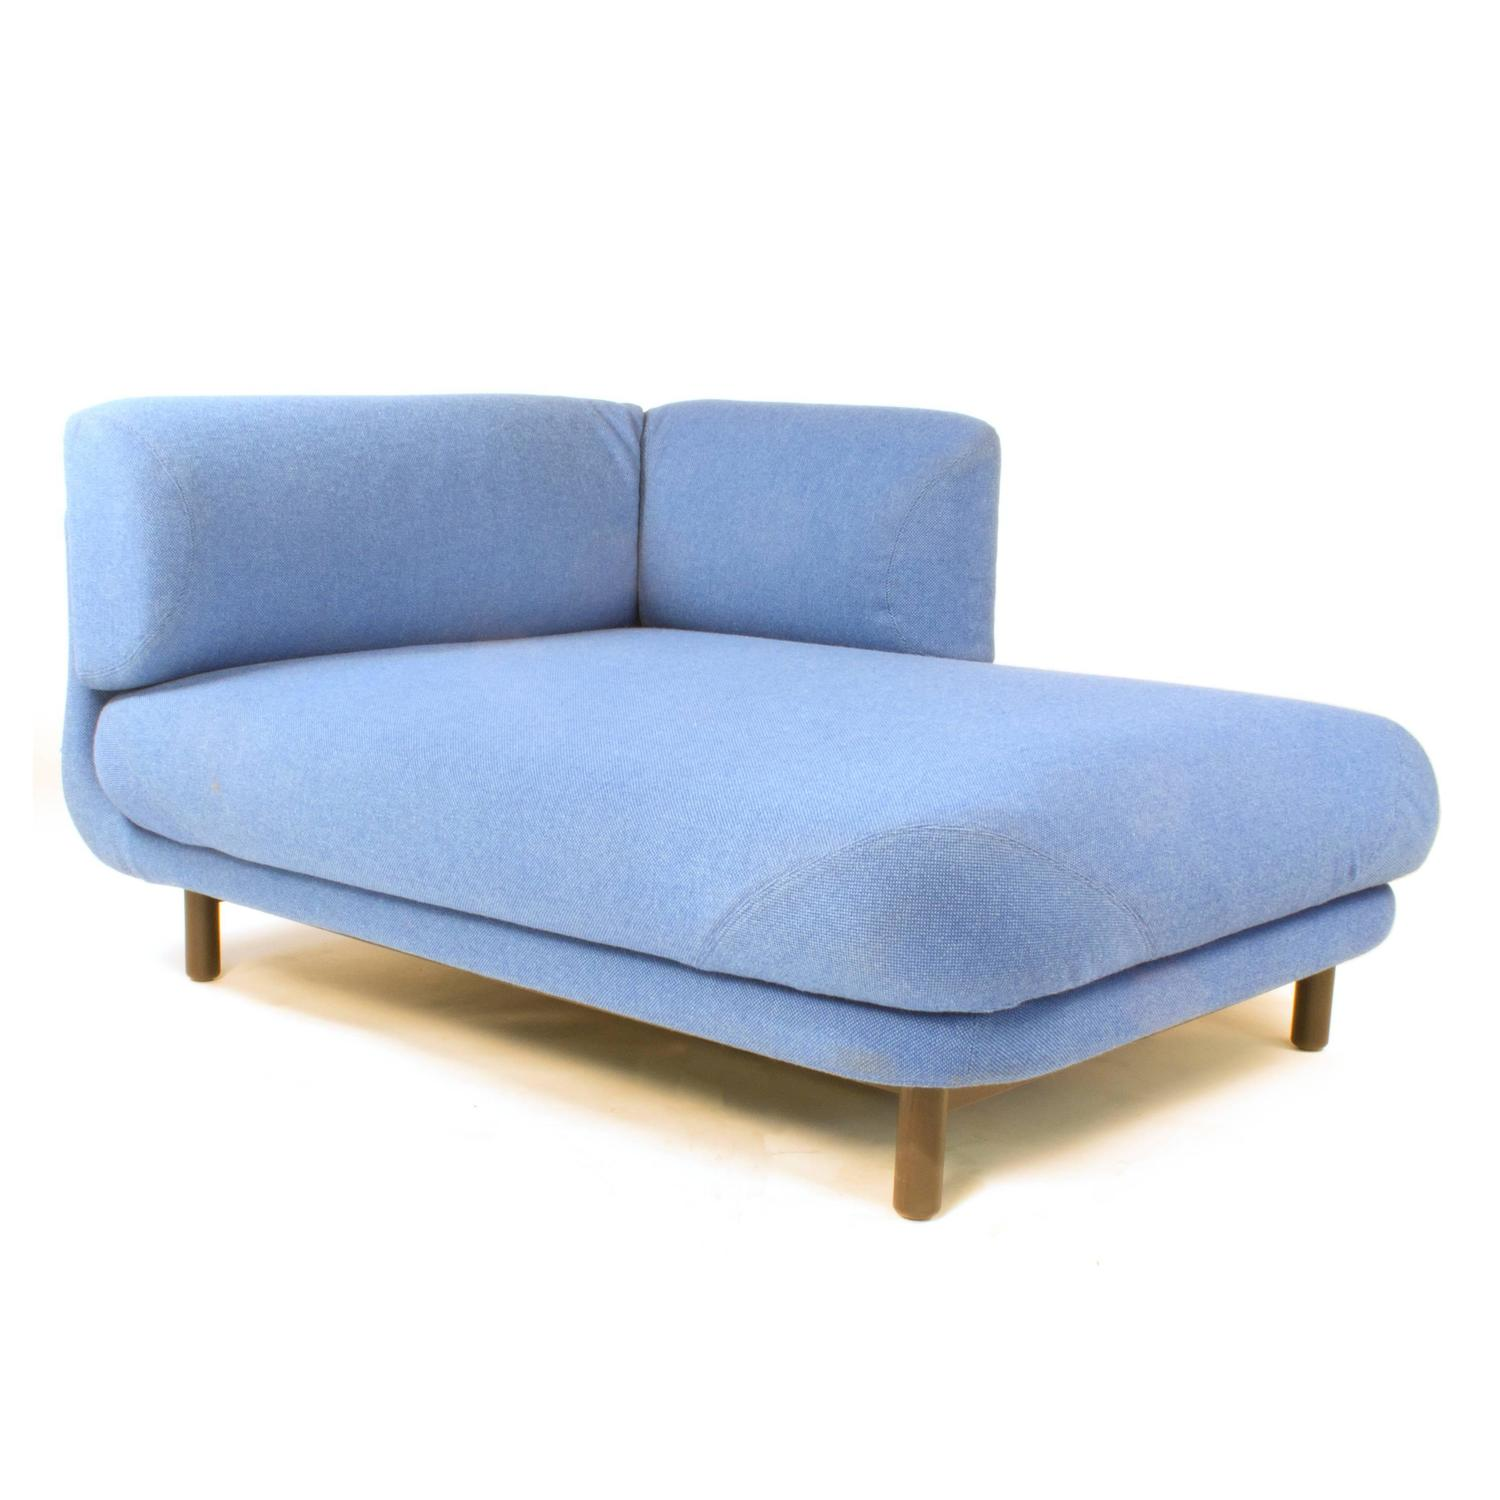 blue peg chaise longue by nendo japan for cappellini